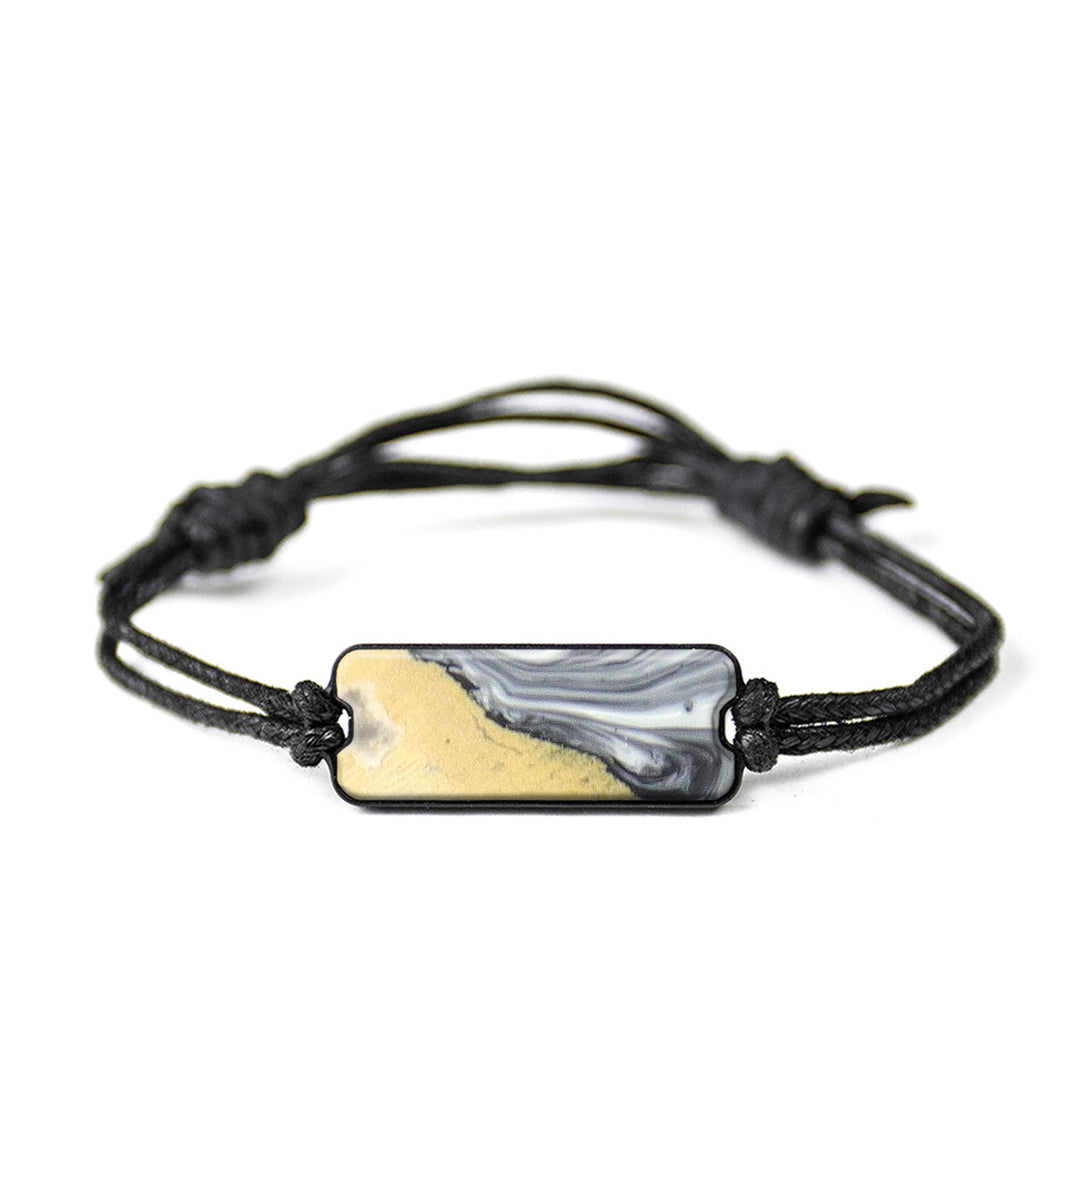 Classic Wood+Resin Bracelet - Amandip (Black & White, 368572)